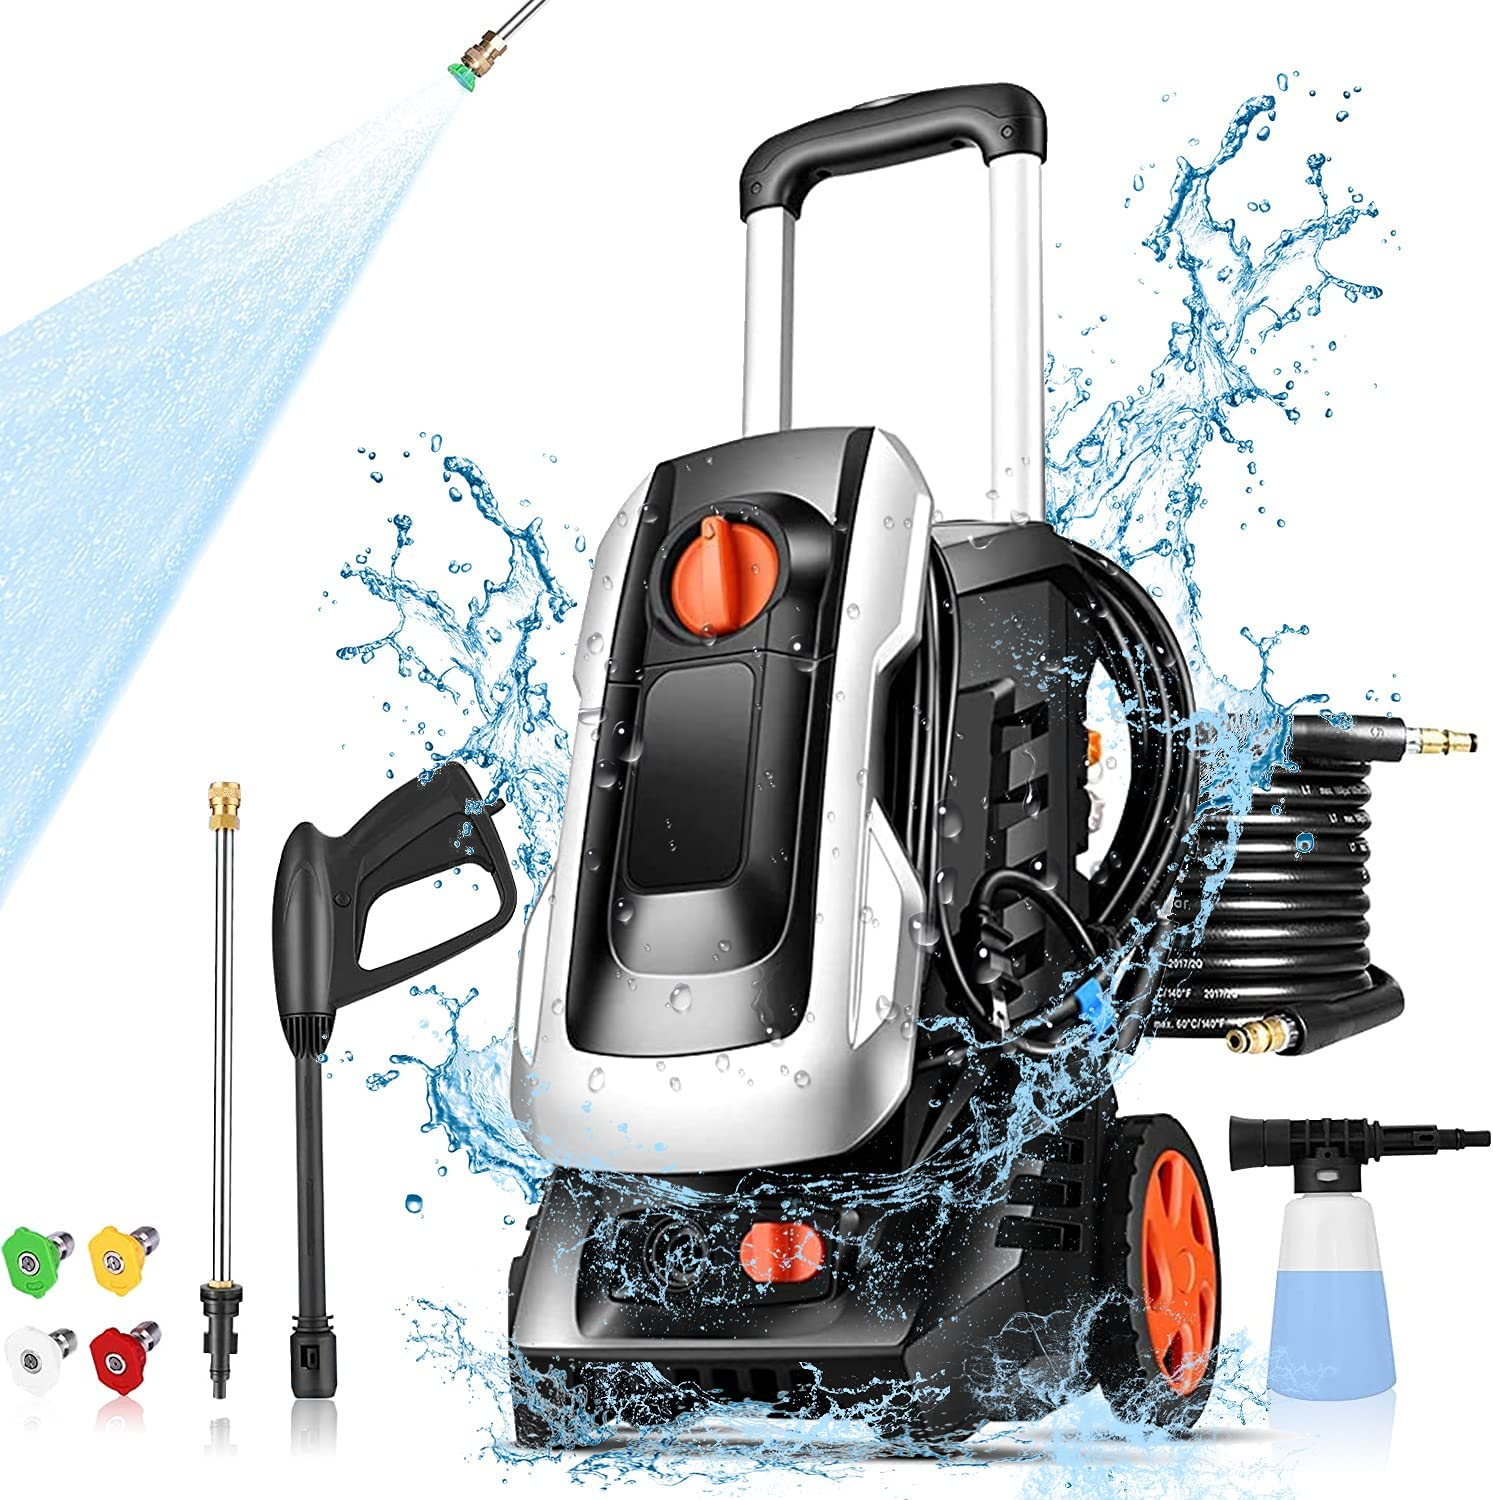 mrliance Electric Fort Worth Mall specialty shop Pressure Washer Permissible 3300PSI P